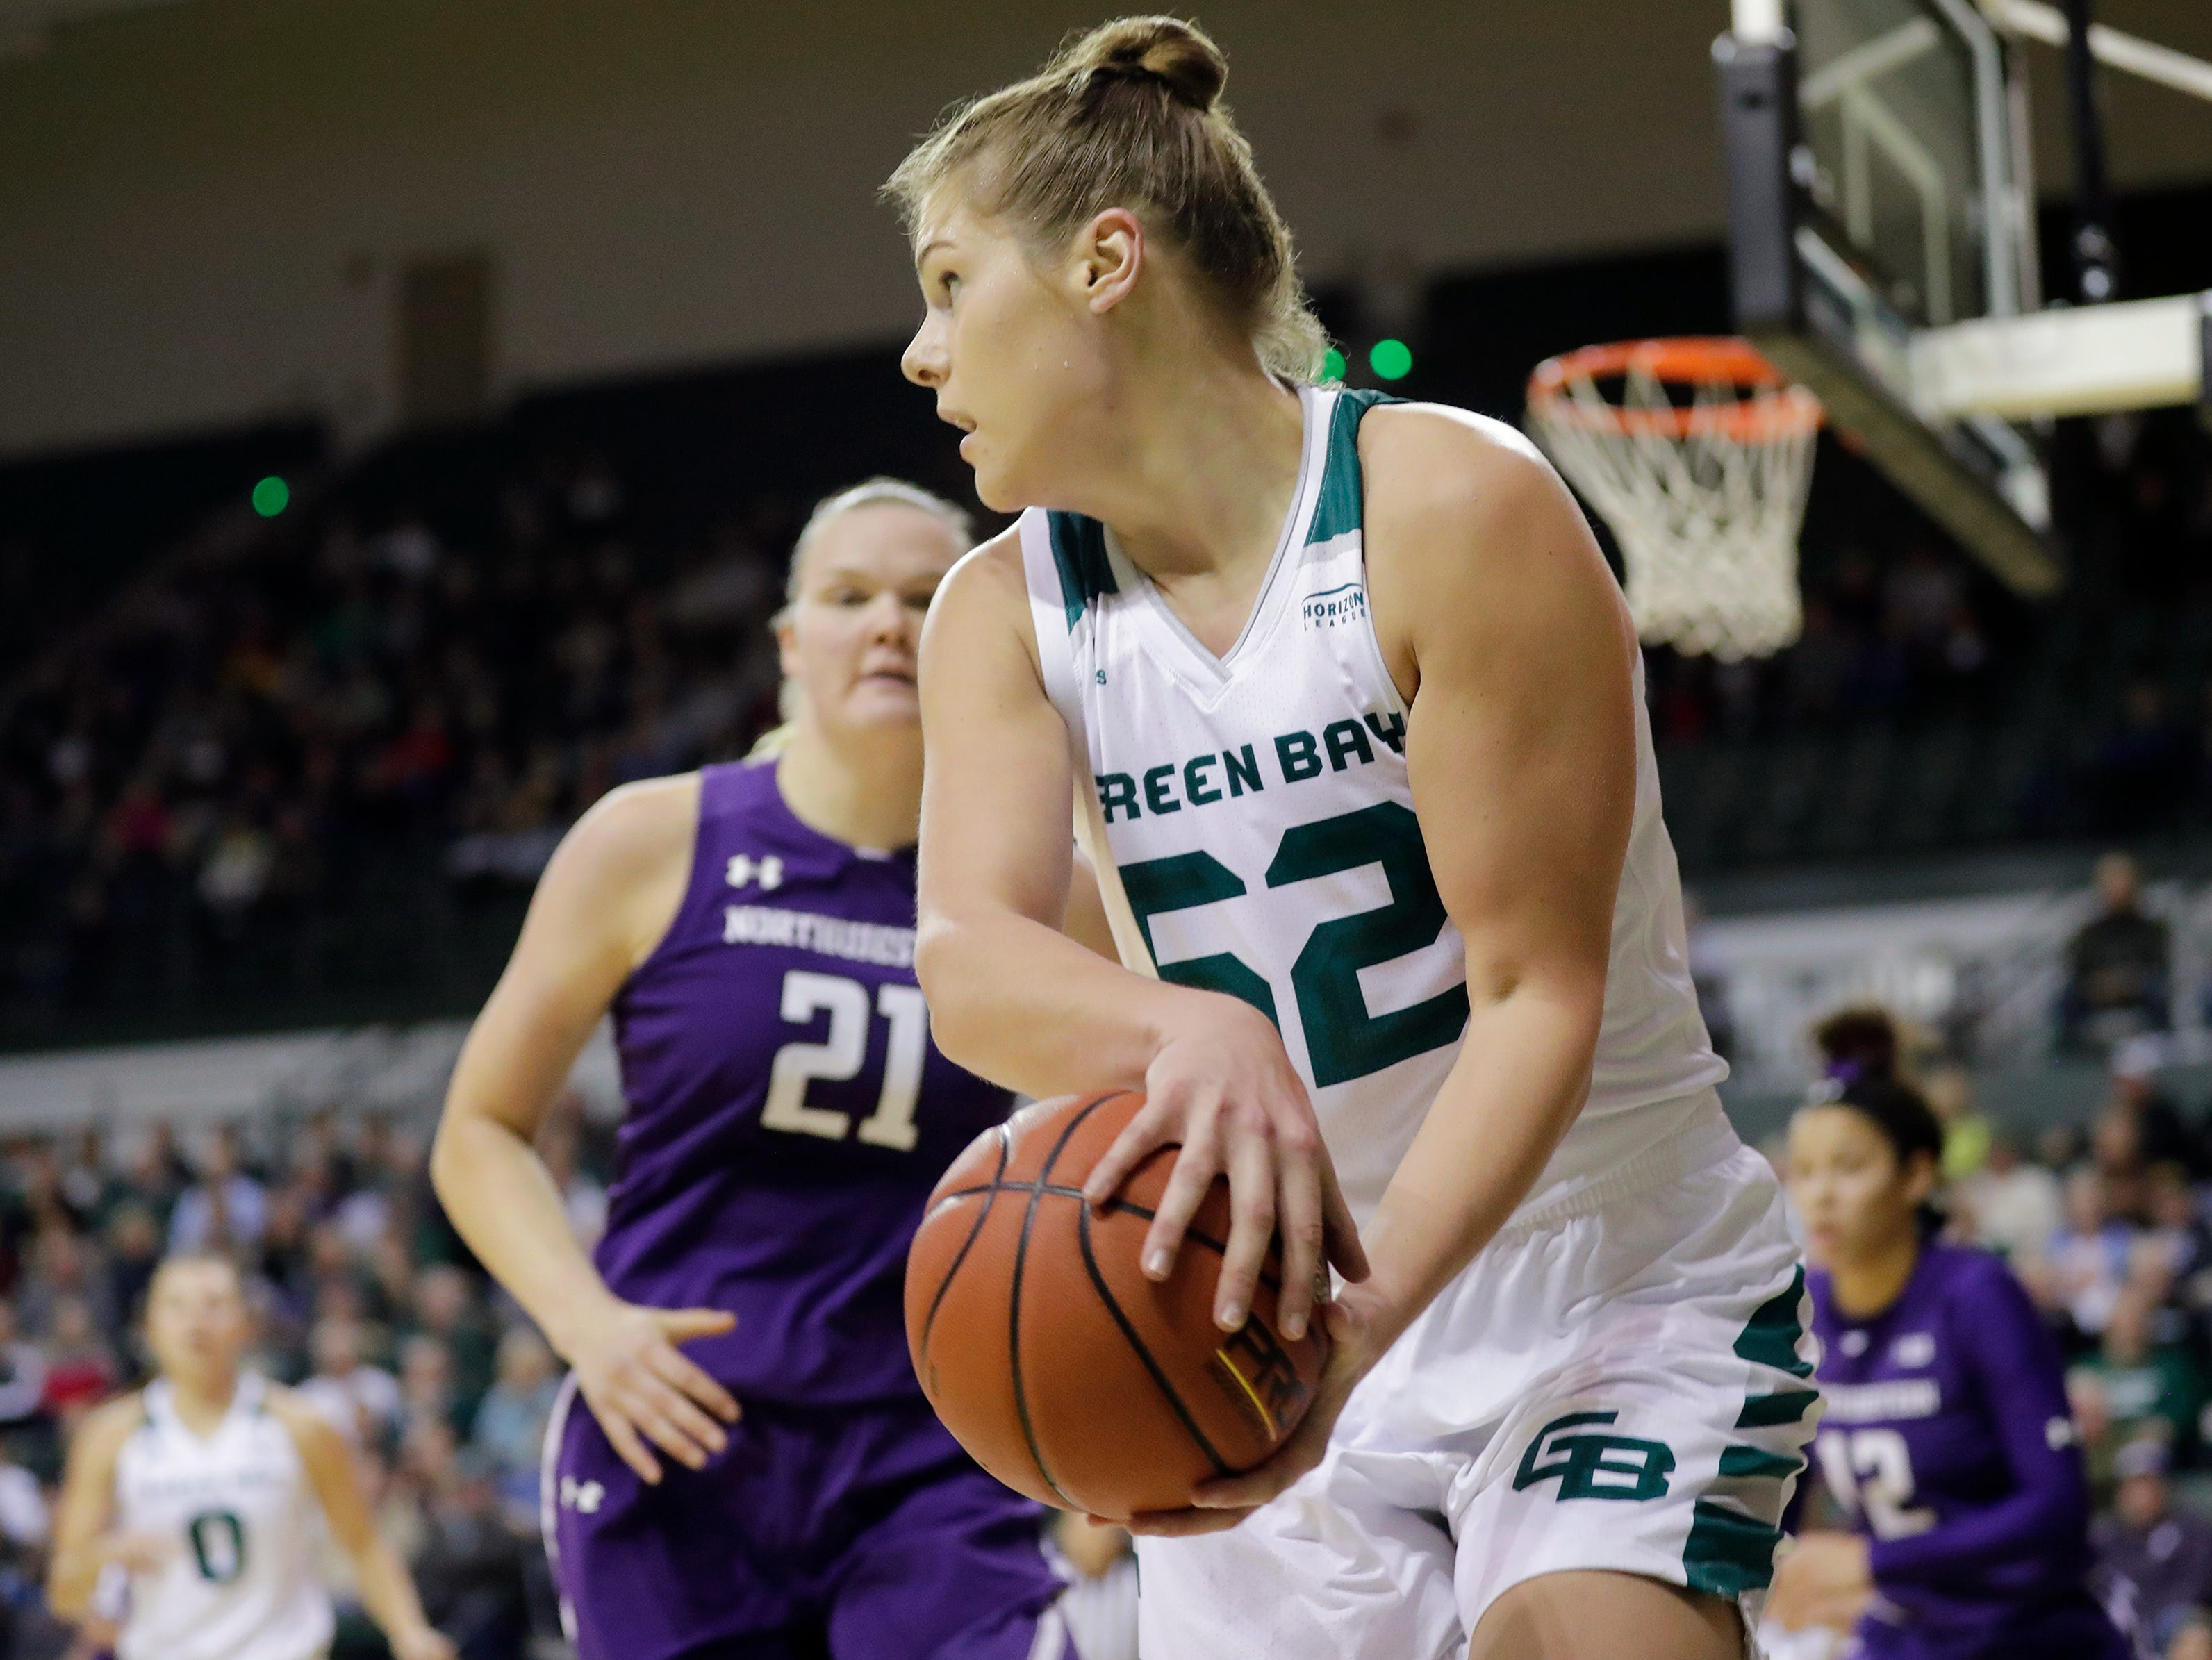 Green Bay Phoenix forward/center Madison Wolf (52) saves the ball from going out of bounds in a women's NCAA basketball game against the Northwestern Wildcats at the Kress Center on Tuesday, November 6, 2018 in Green Bay, Wis.